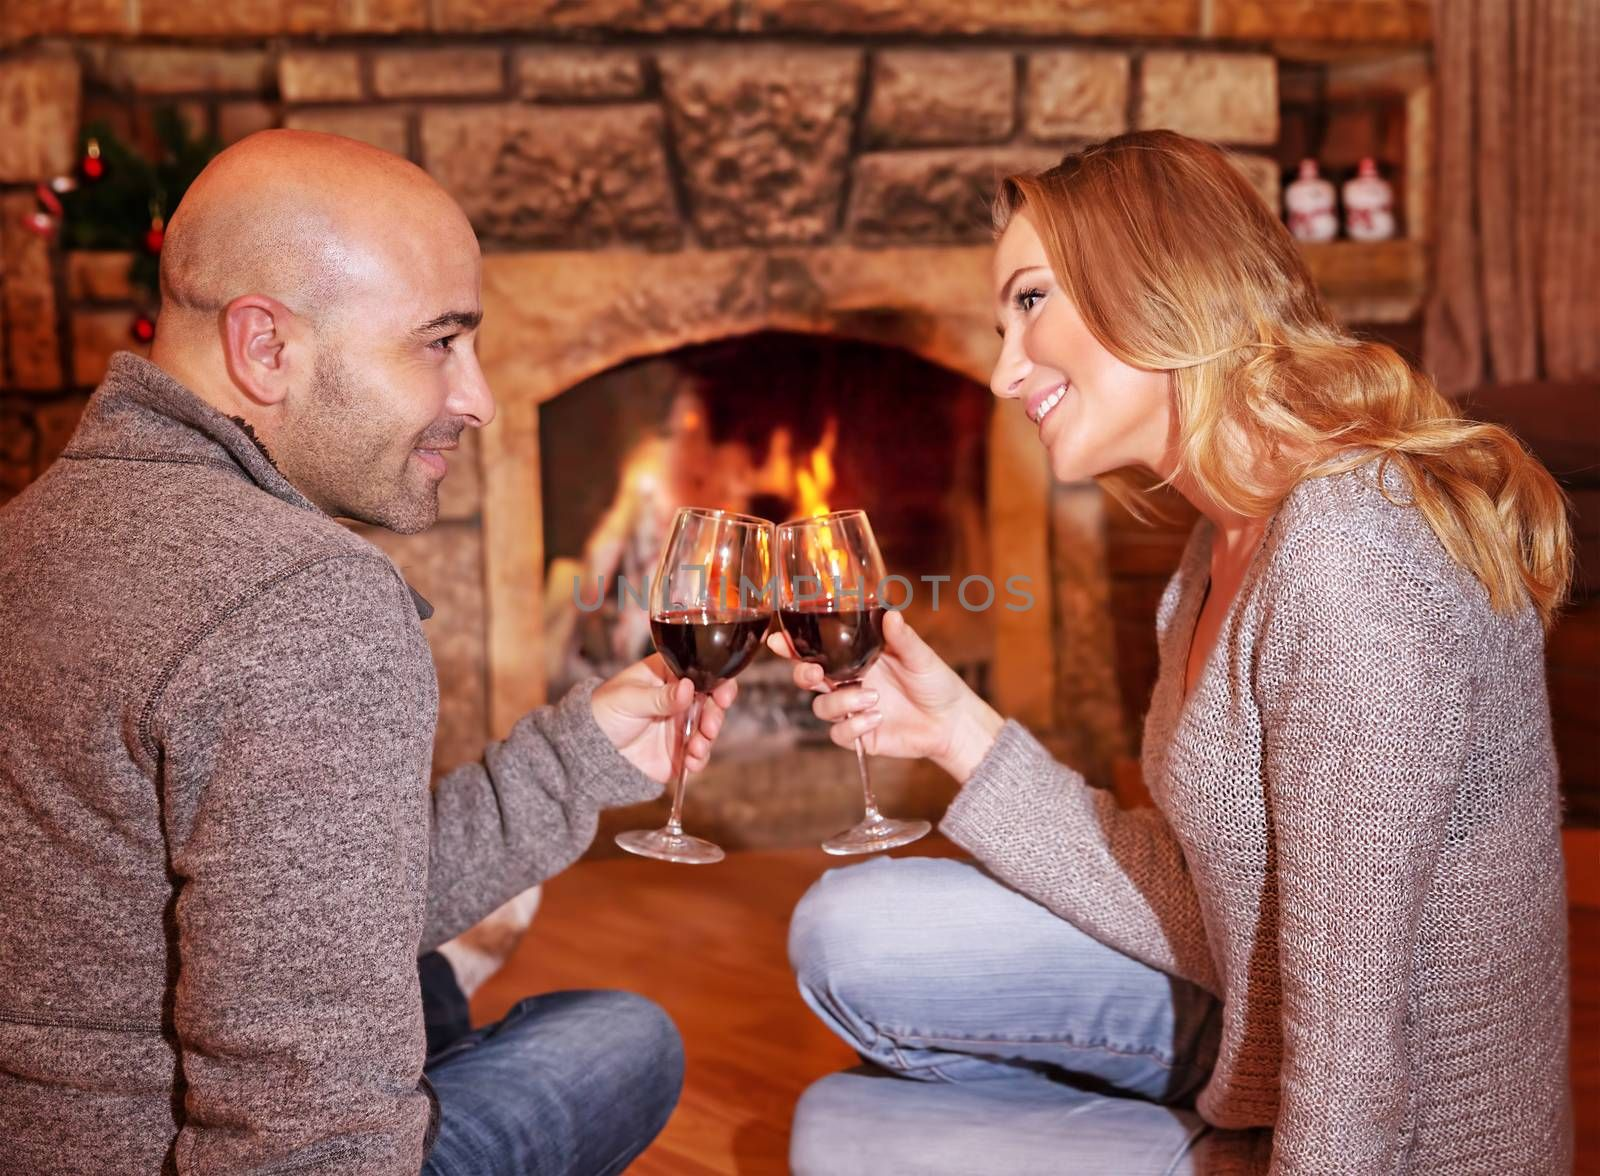 Side view of happy cheerful couple sitting on the floor near fireplace, clinking glasses with tasty red wine, enjoying romantic date